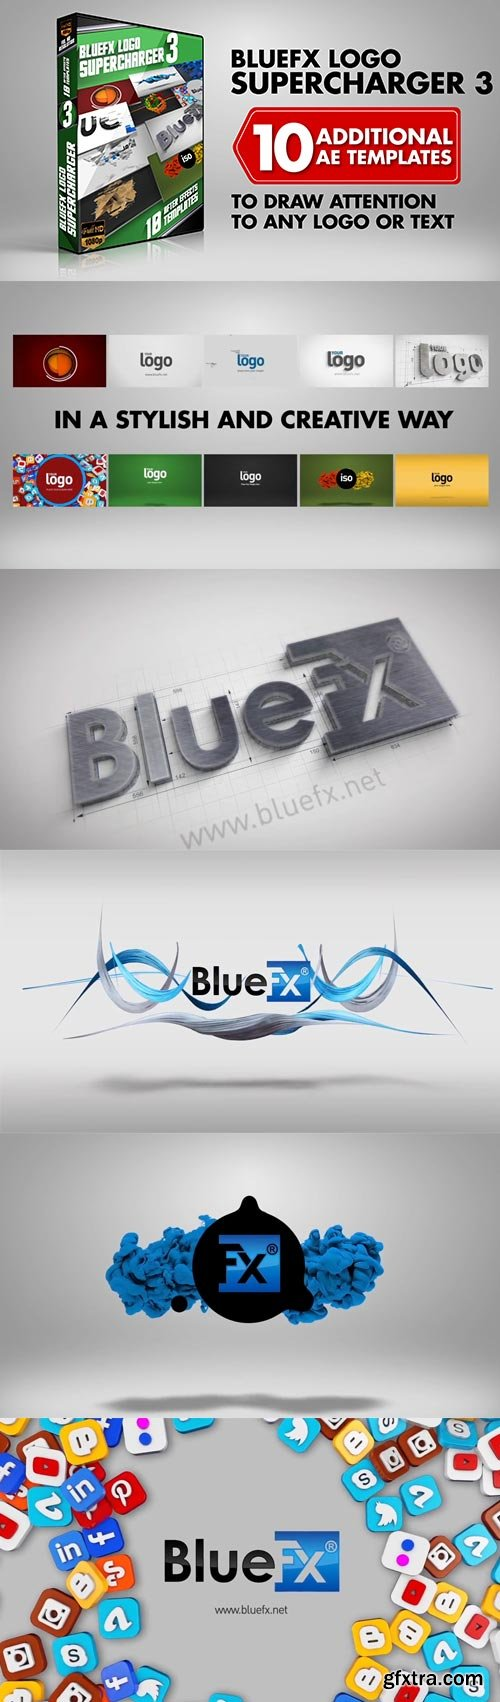 Bluefx - Logo Supercharger 3